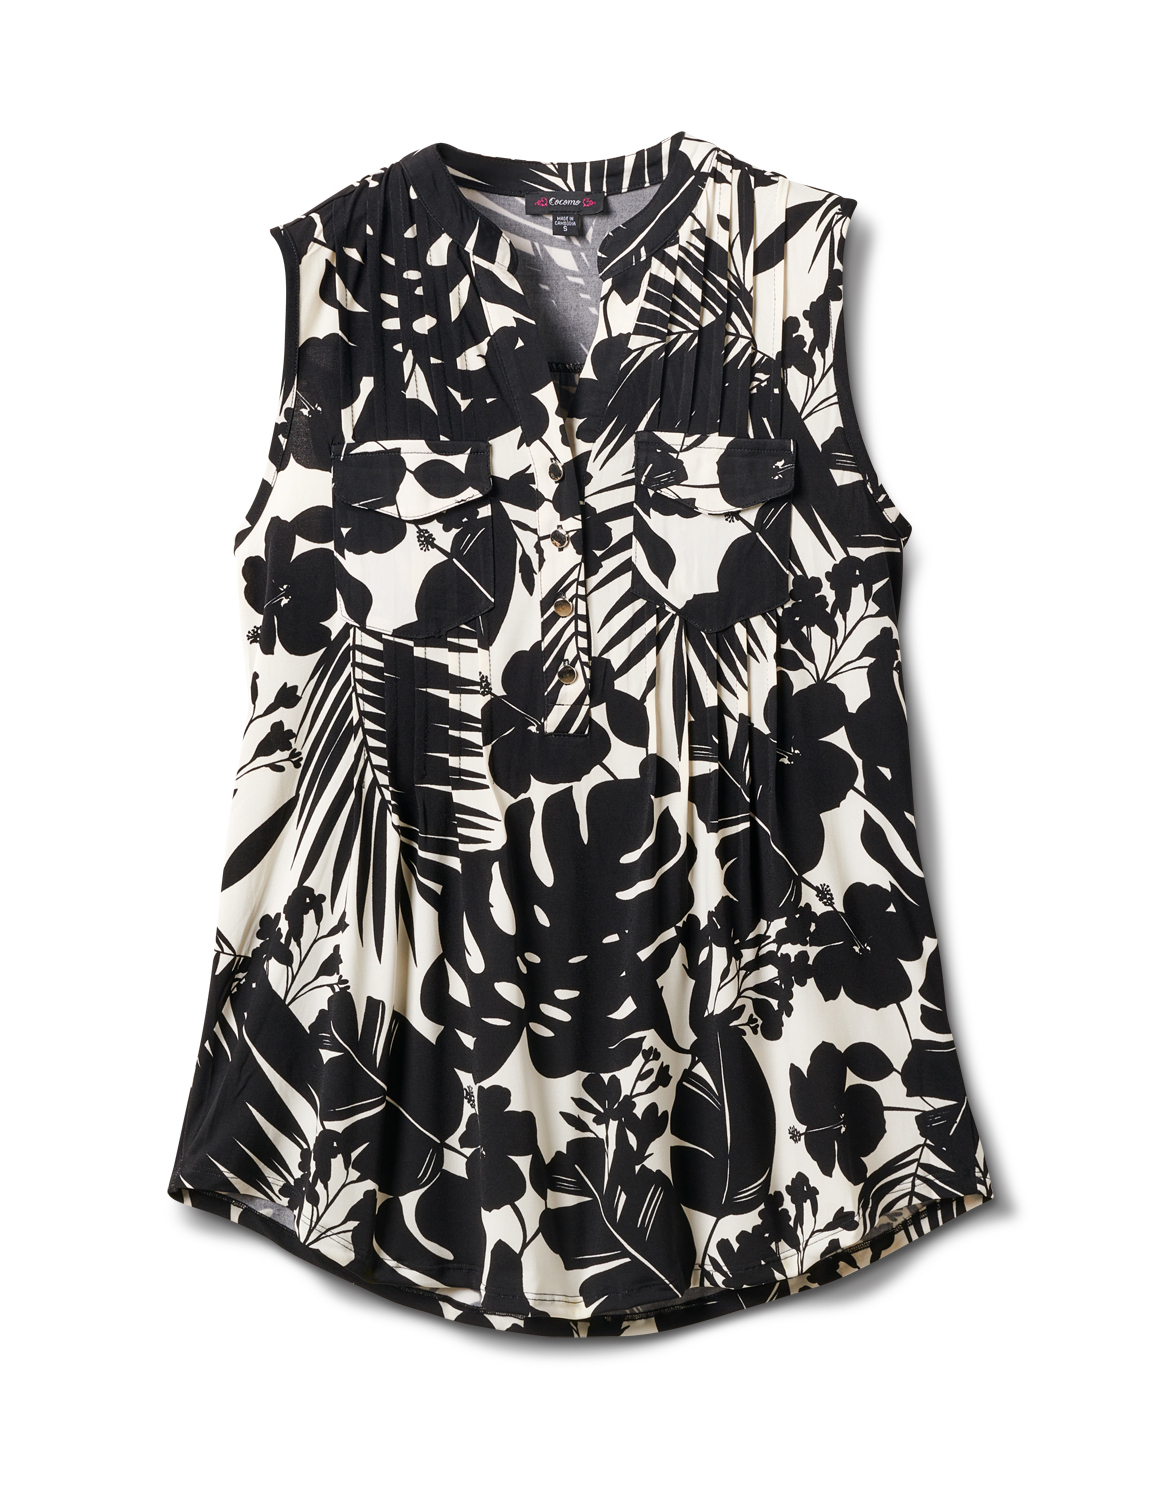 Tropical Floral Sleeveless Knit Popover -Black/Ivory - Front